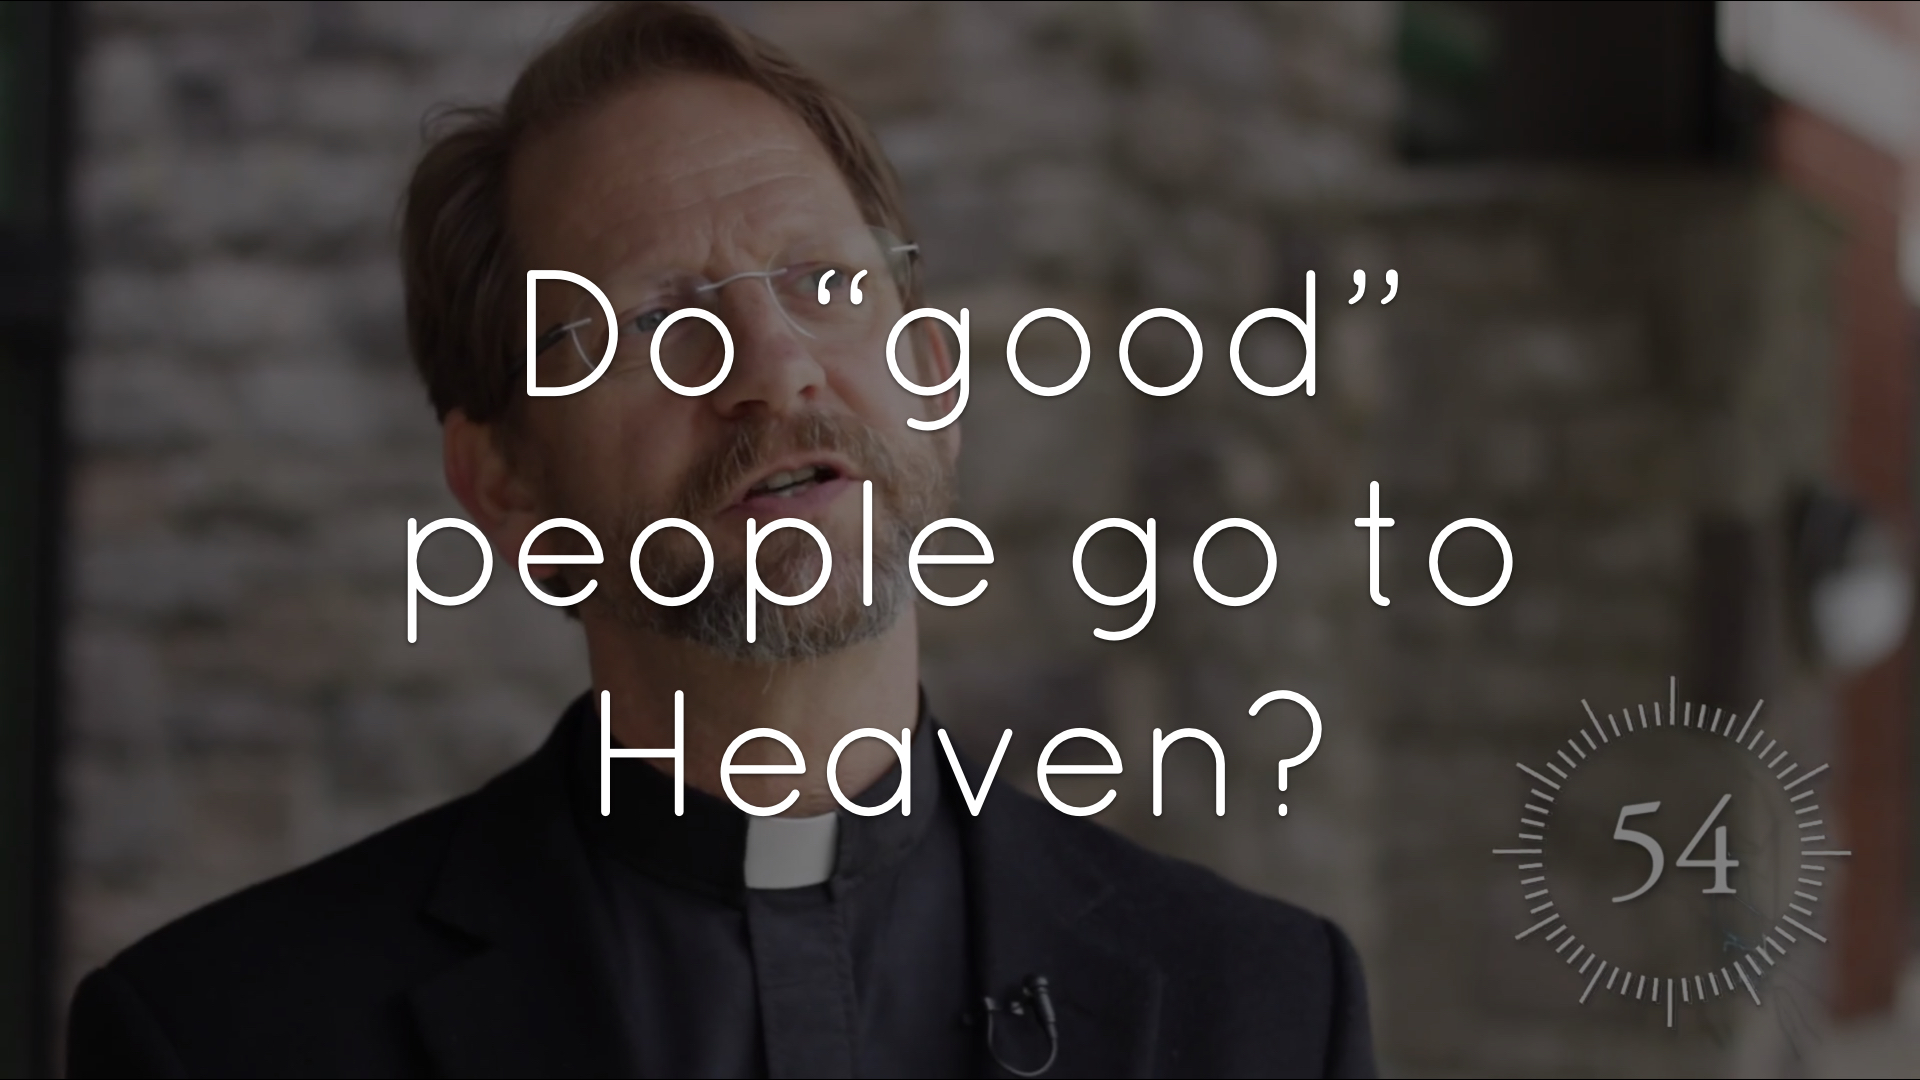 Can you get to Heaven by just being a good person?